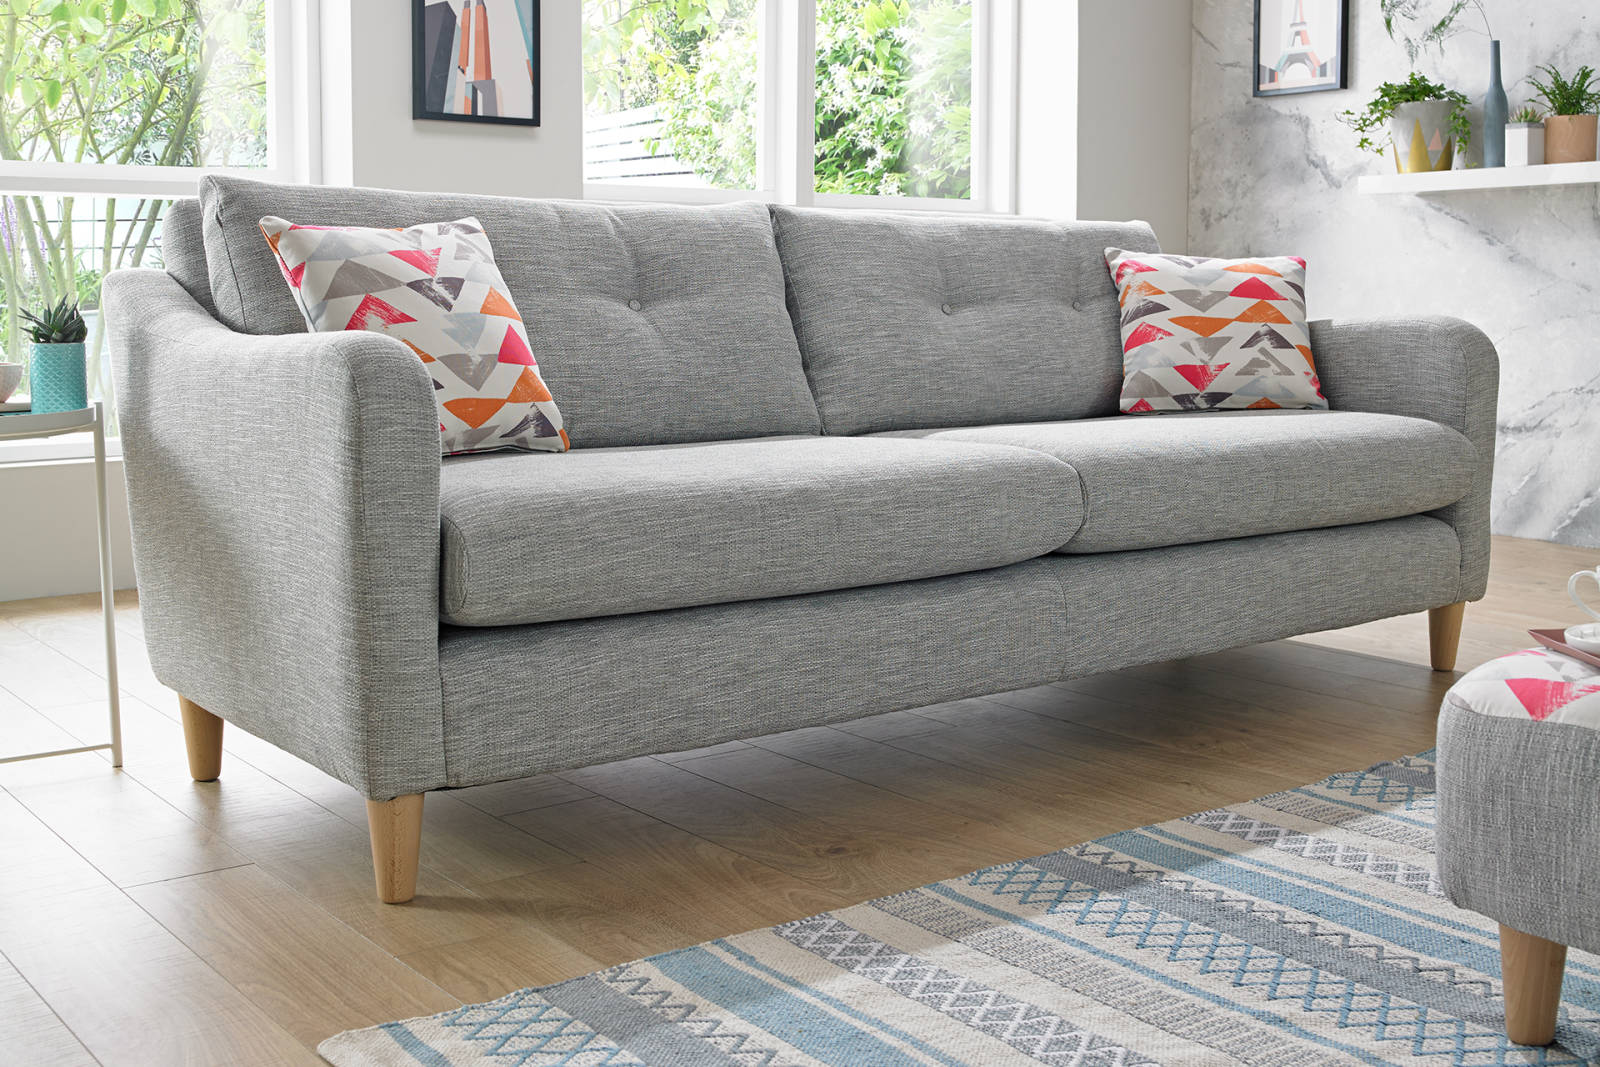 Sofology Sofa Bed Clearance Www Resnooze Com